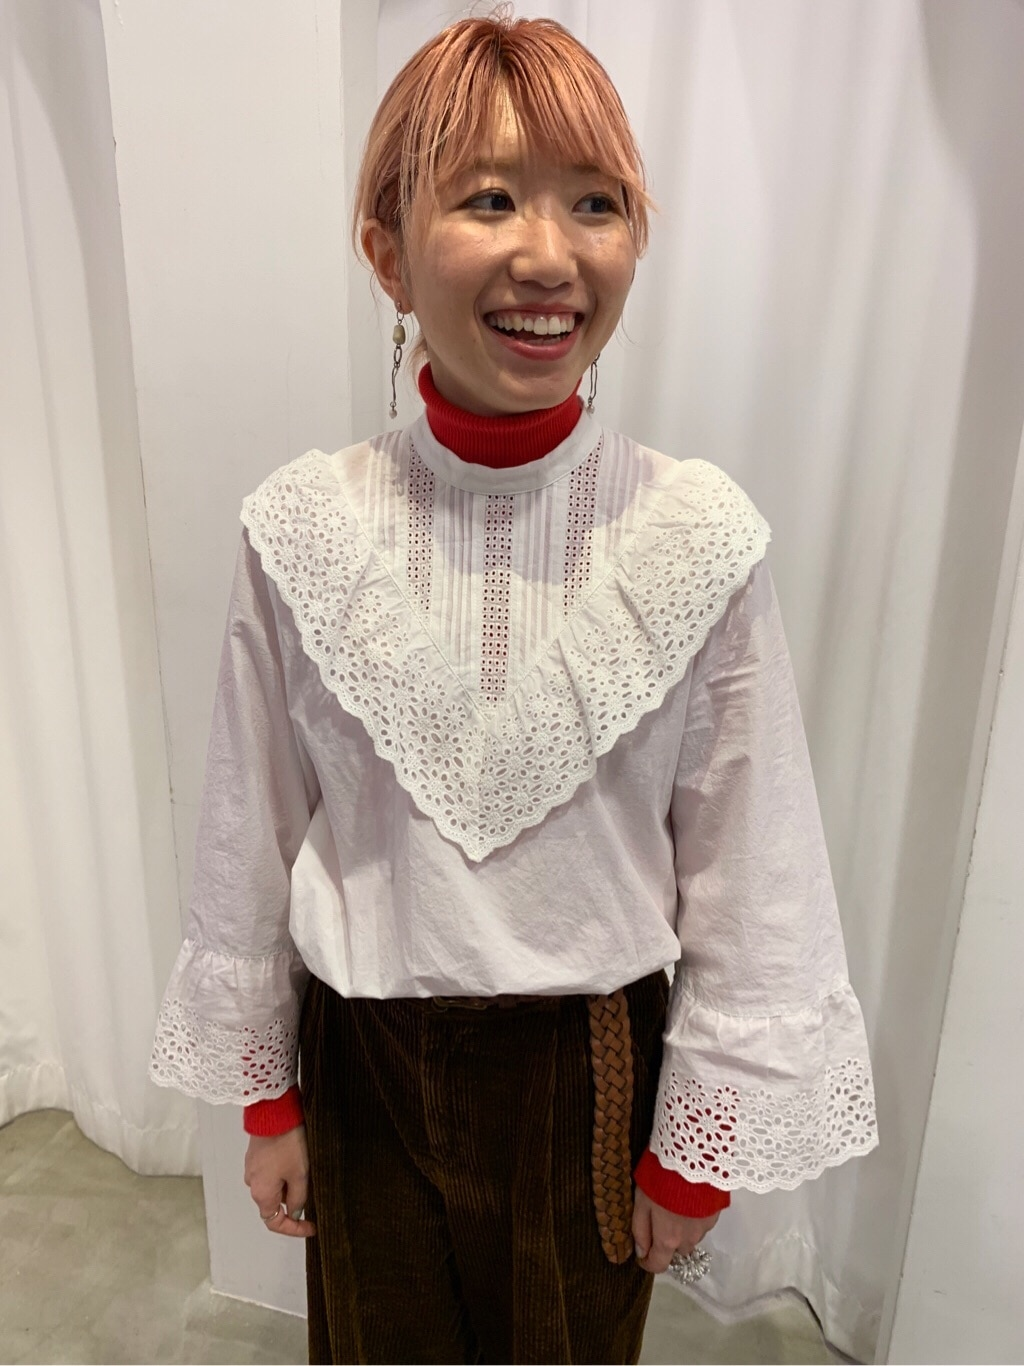 Dot and Stripes CHILD WOMAN 新宿ミロード 身長:160cm 2019.10.31